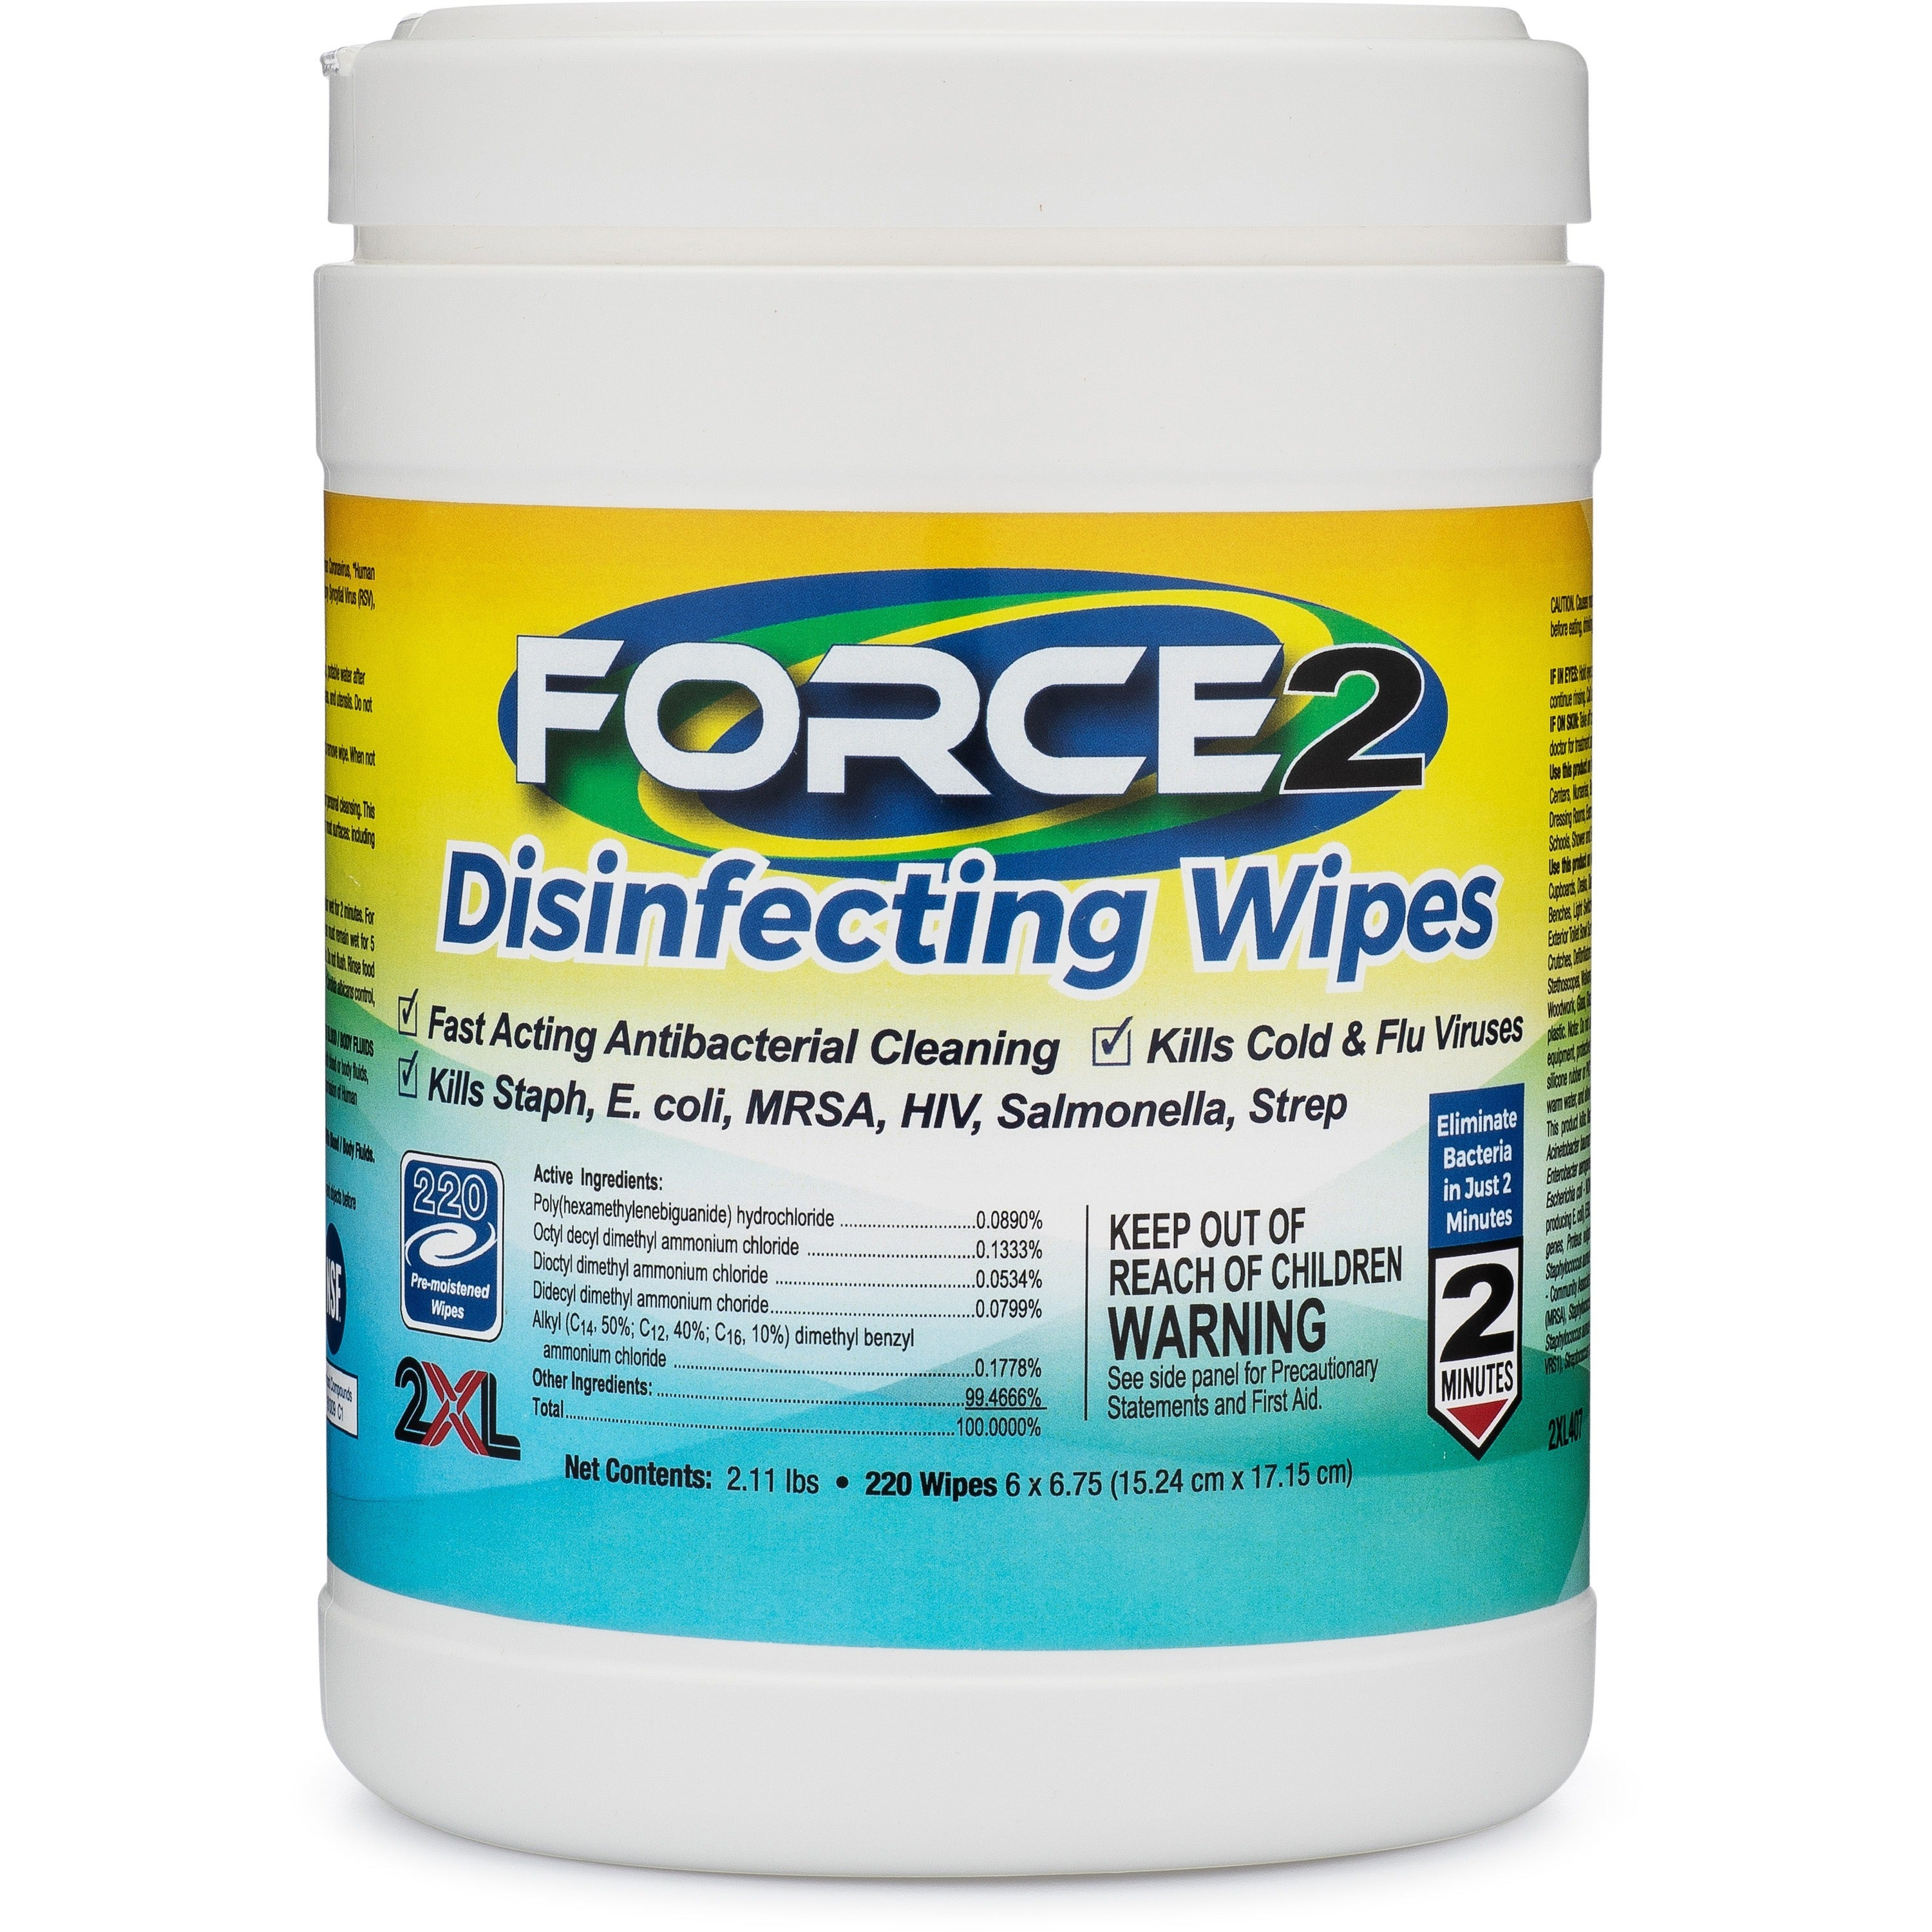 2XL FORCE2 Disinfecting Wipes 220/Can